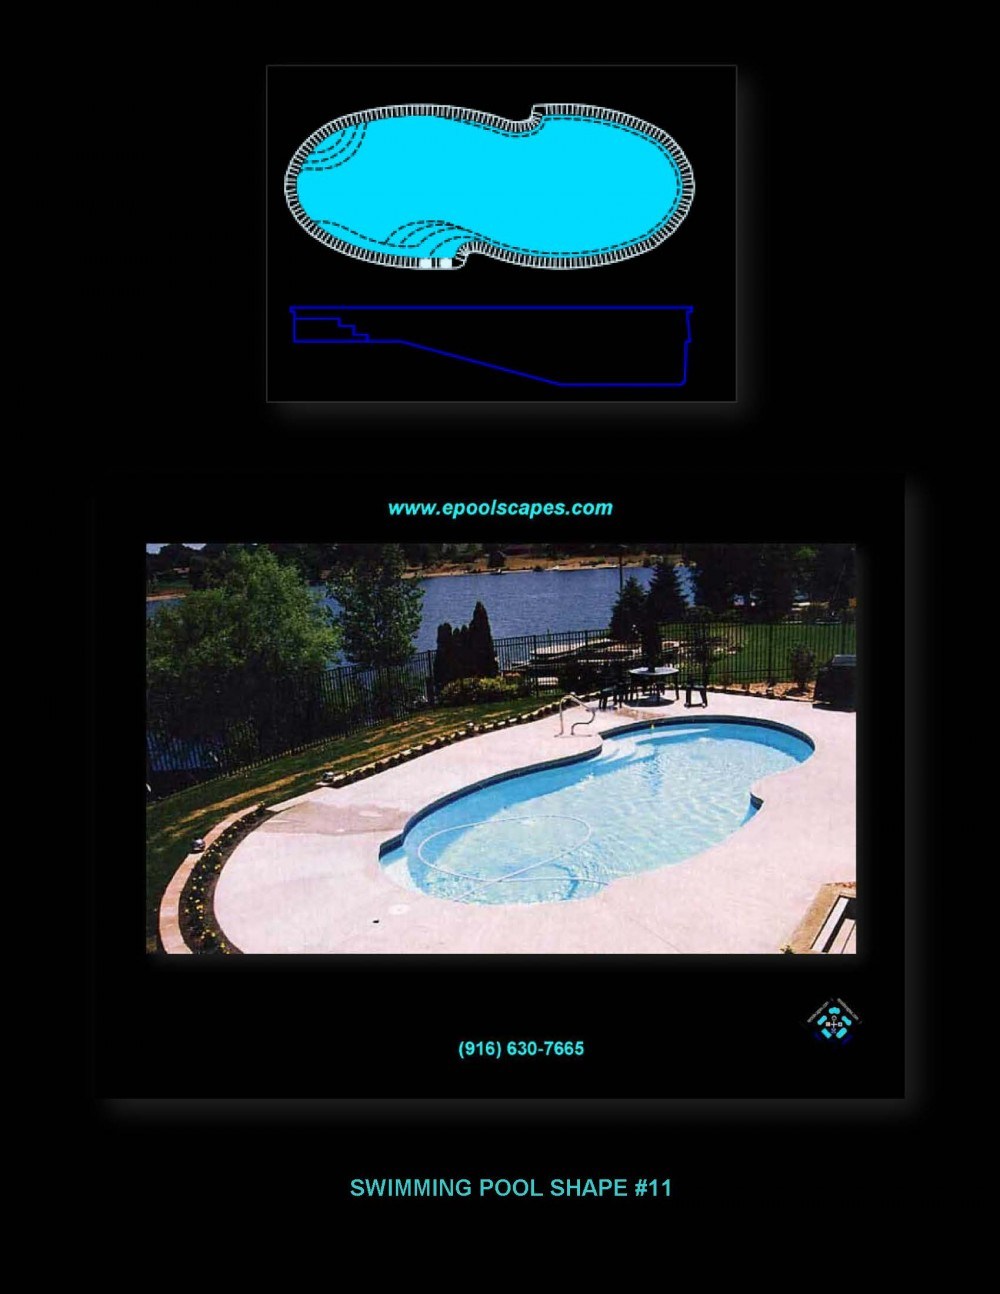 Pool Shape #11